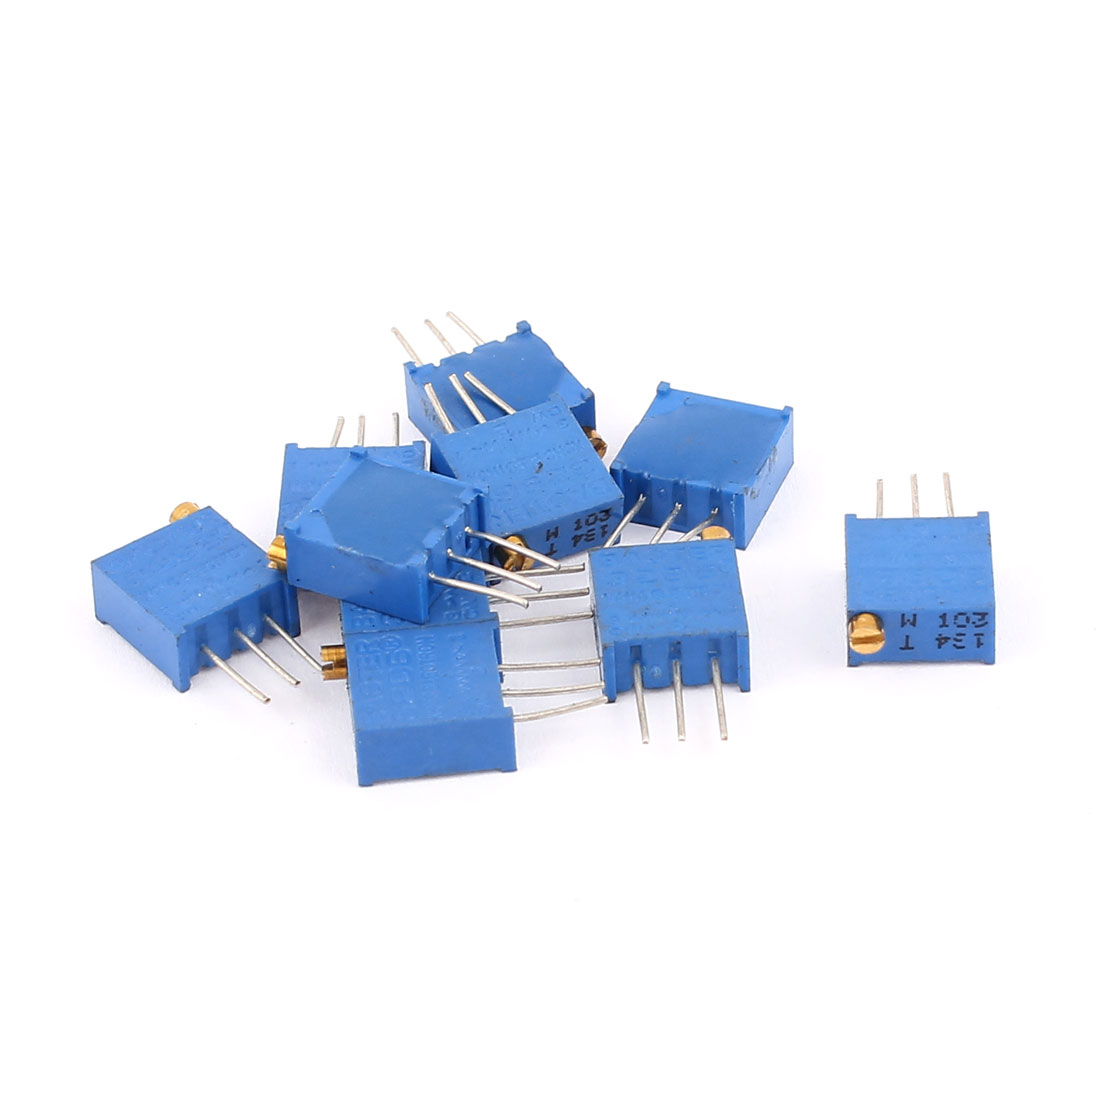 10 Pcs 3296W 10K ohm Multiturn Potentiometer Pot Variable Resistor